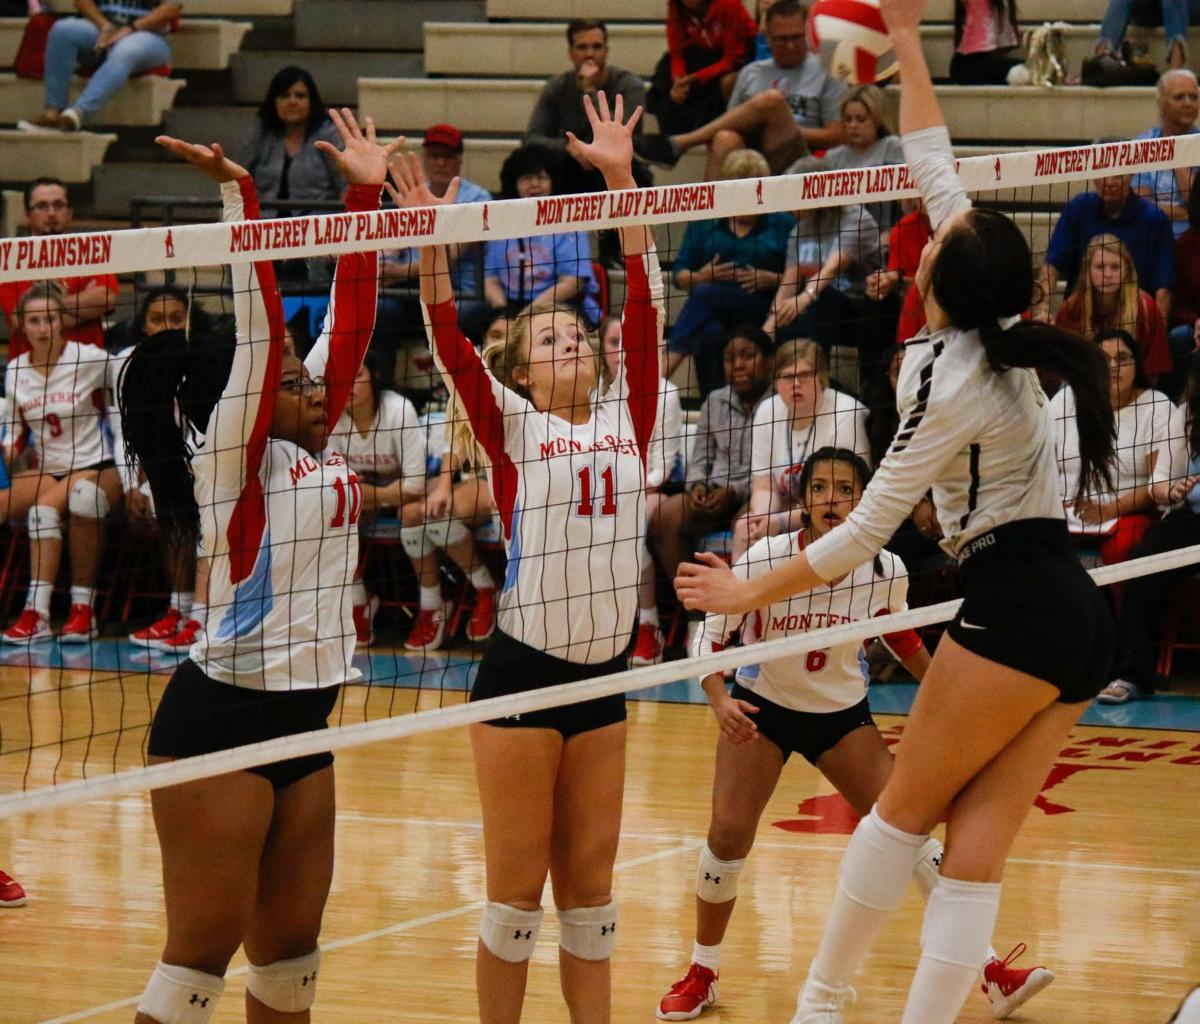 VOLLEYBALL | After a strong start, Monterey's scuffles open the door for Amarillo to pull away